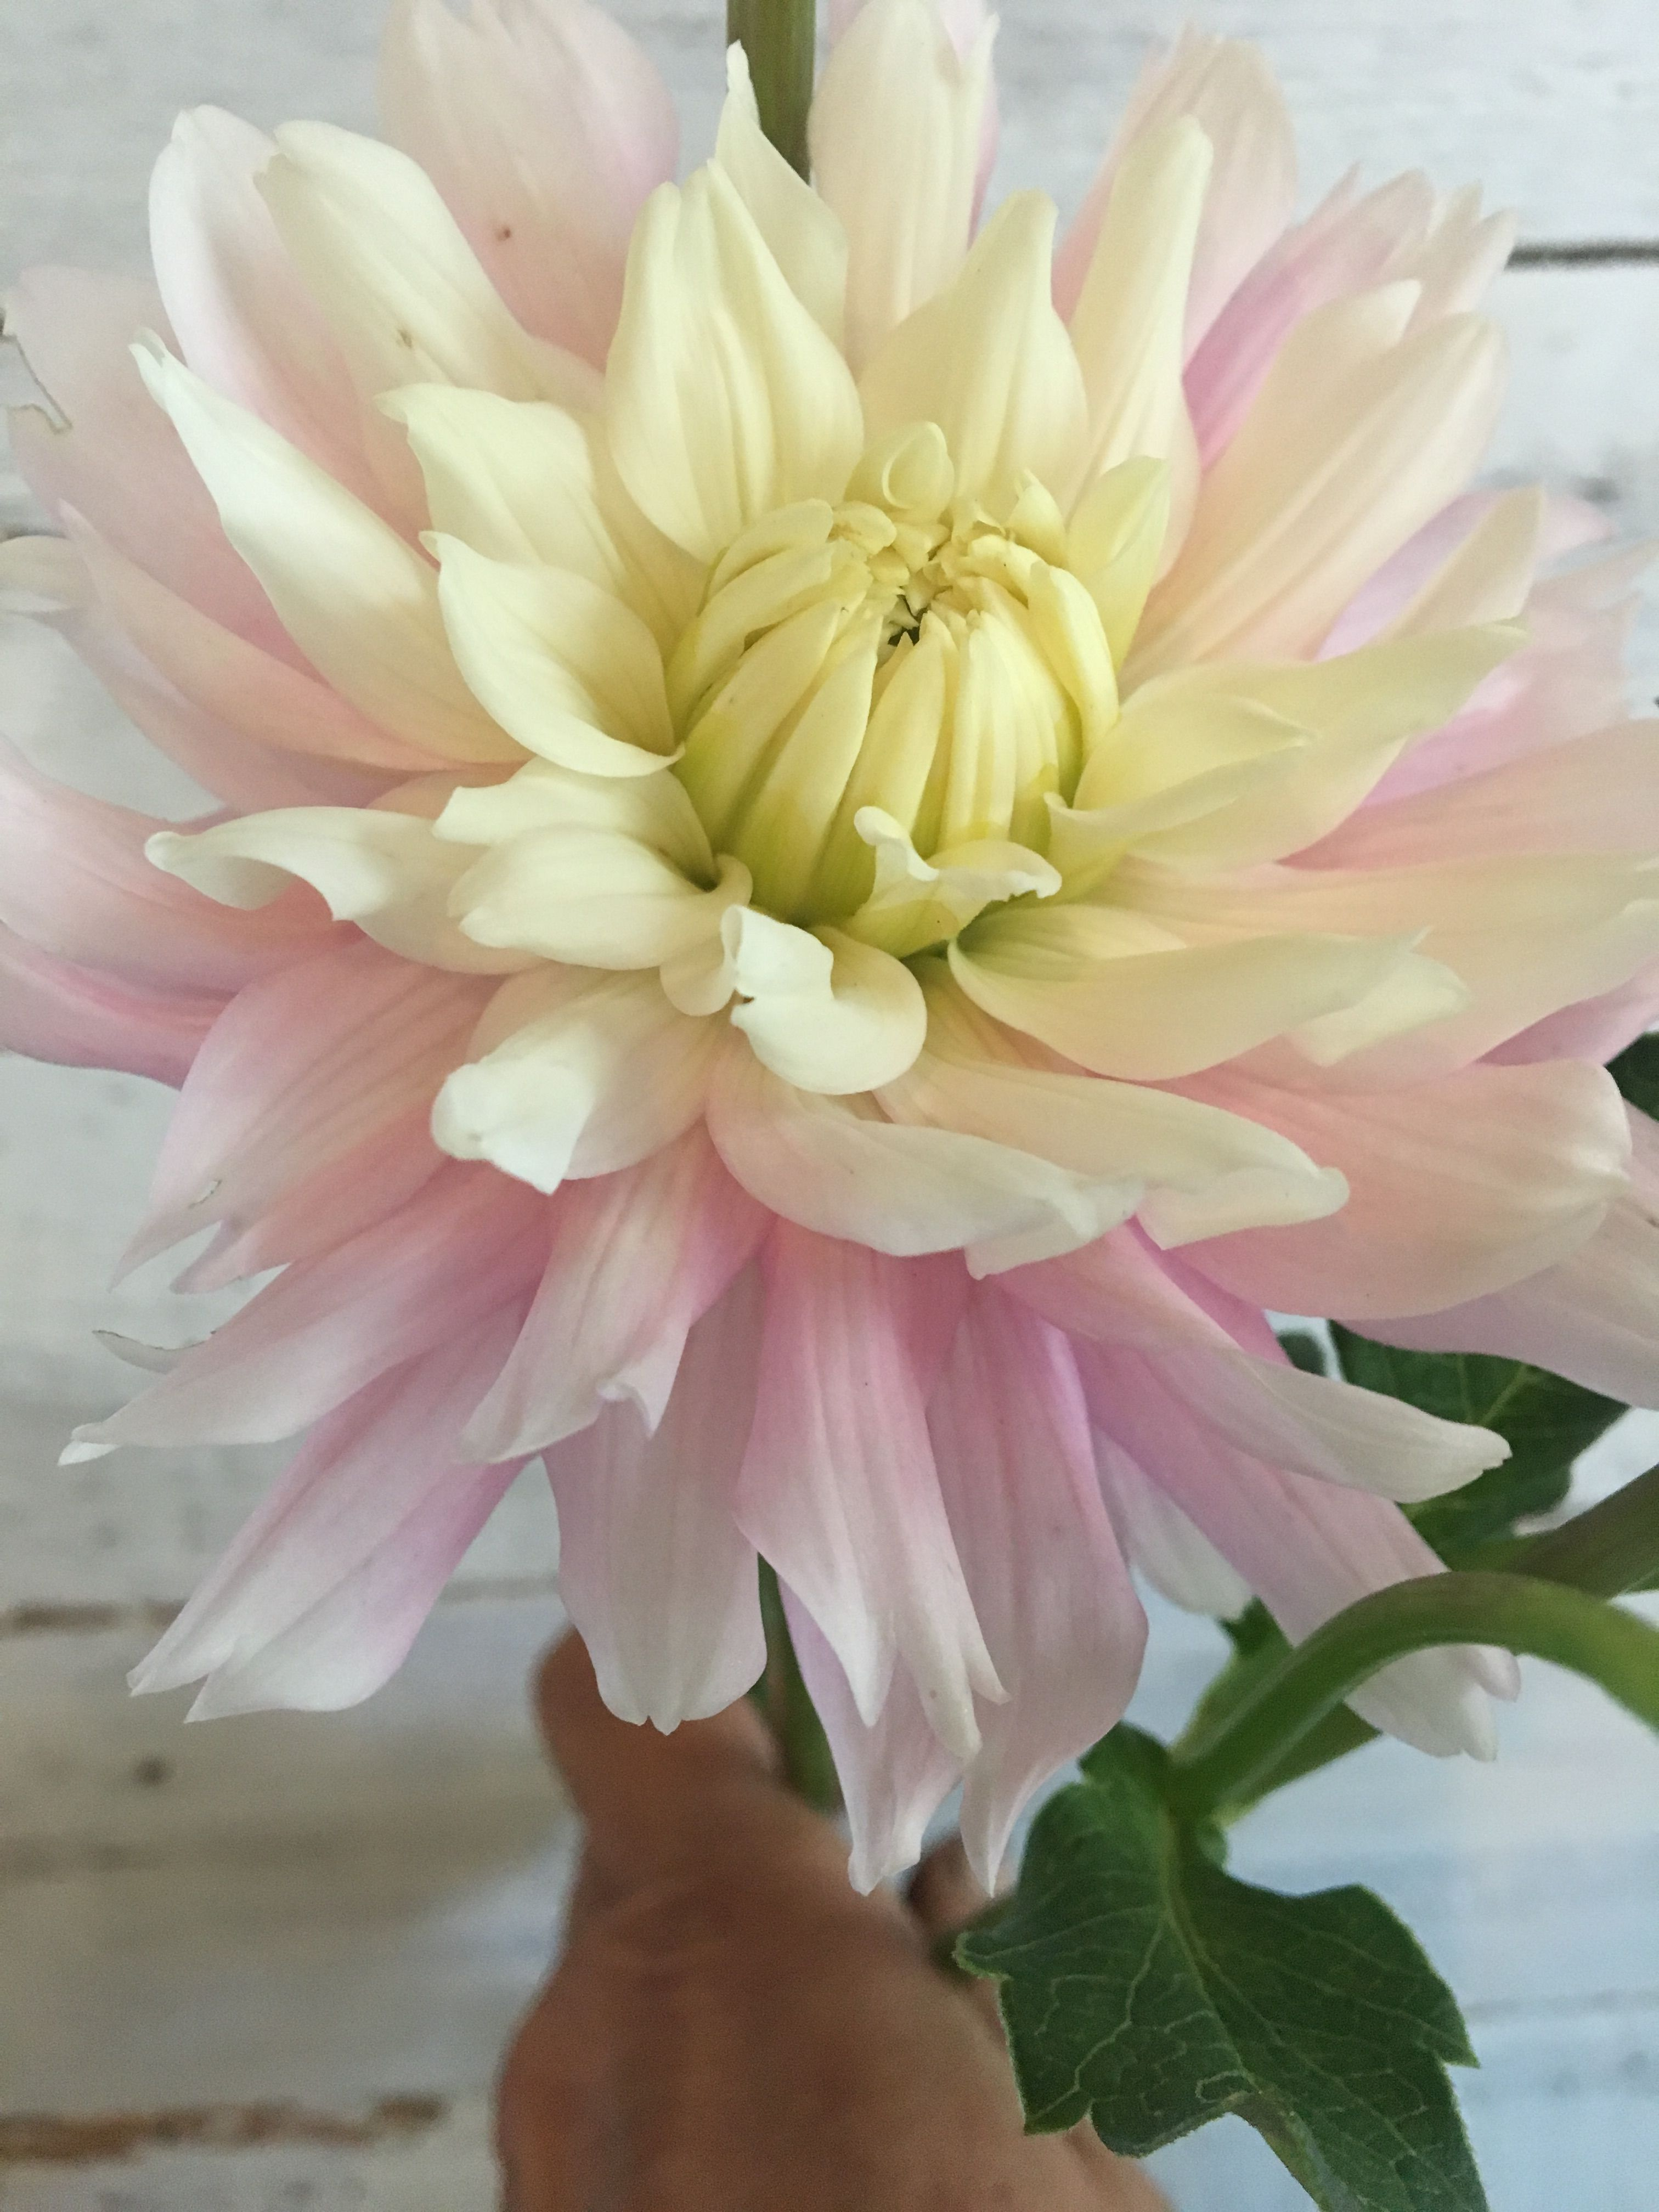 Chiltons Pride Dahlia Decorative Type Yellow Center To Light Pink With Touches Of White At The Ends Unique Verity Blush Flowers Wedding Flowers Dahlia